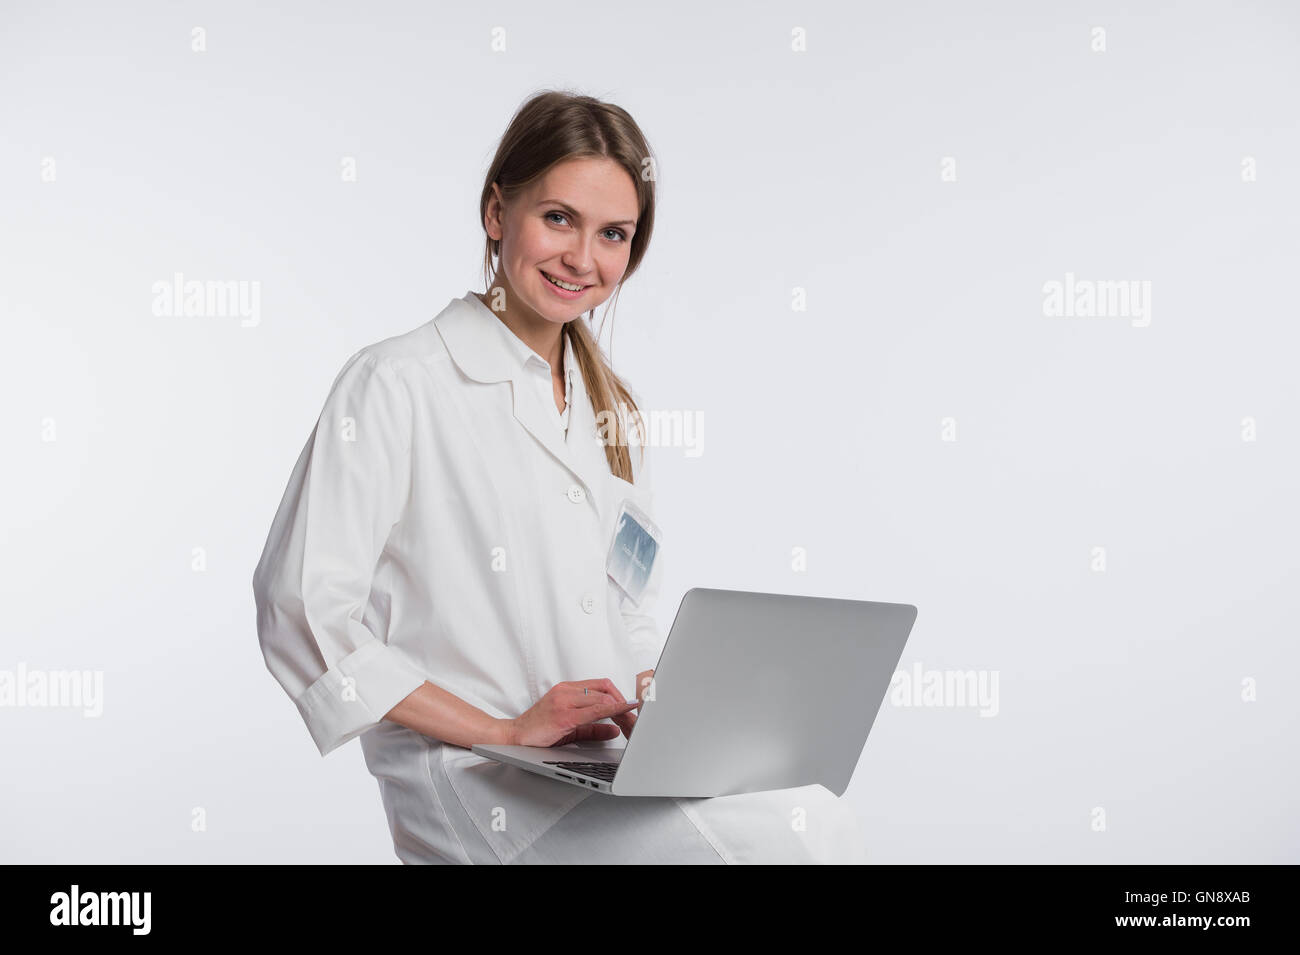 Smiling female doctor working on her laptop against a white background Stock Photo